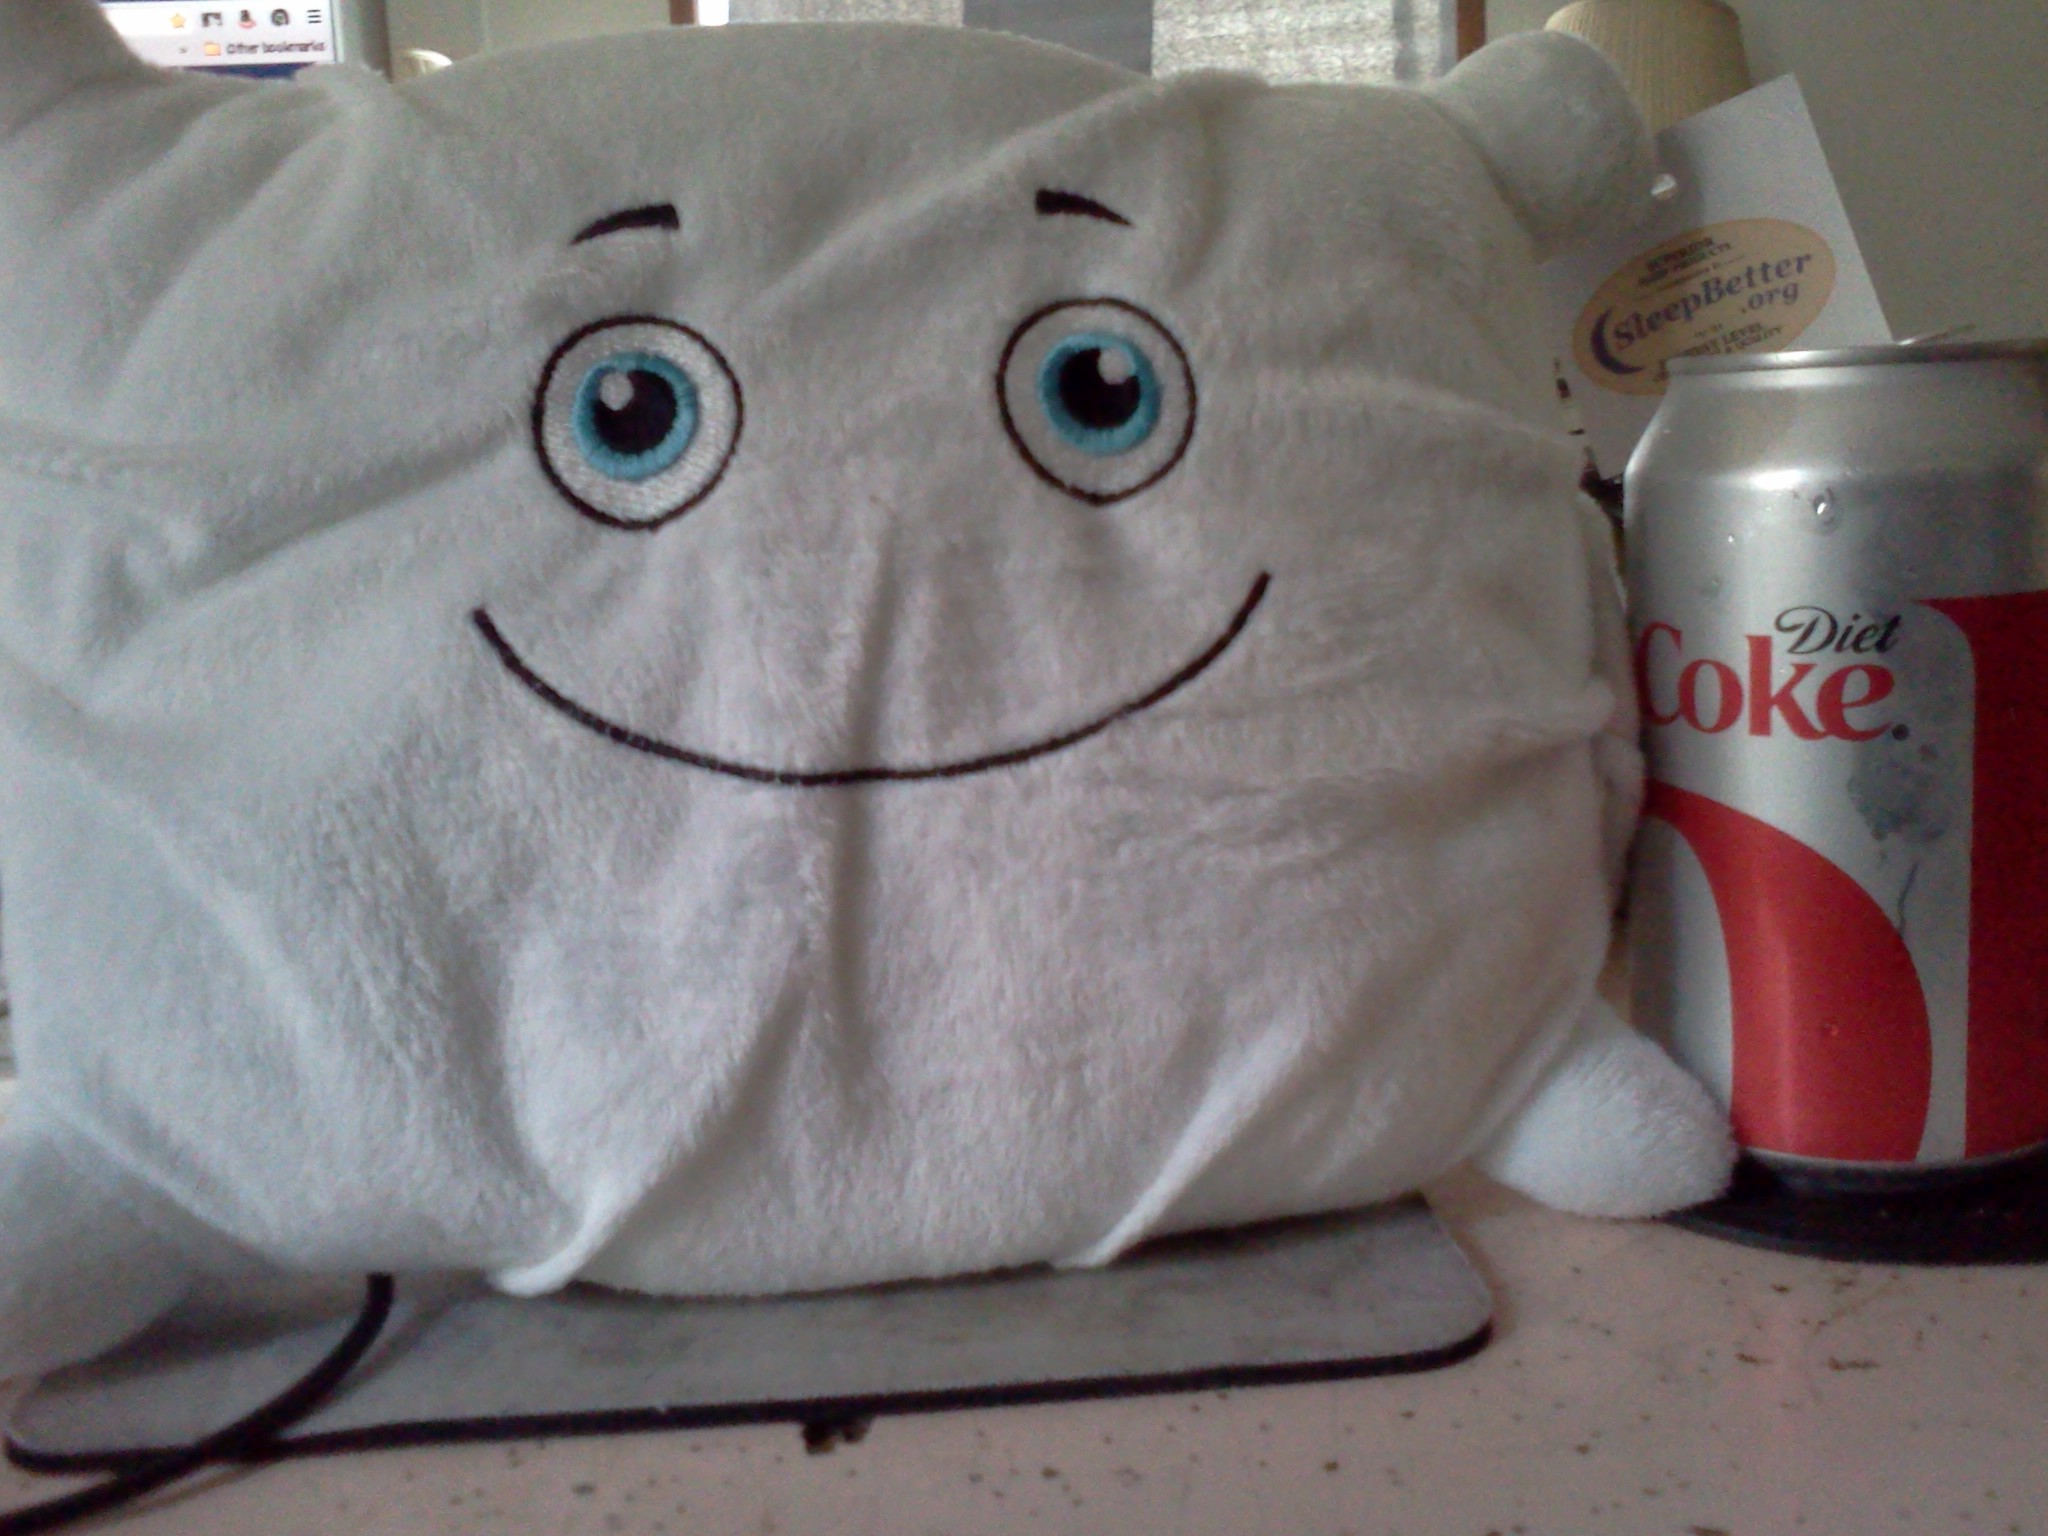 Have a (diet) Coke and a Smile!